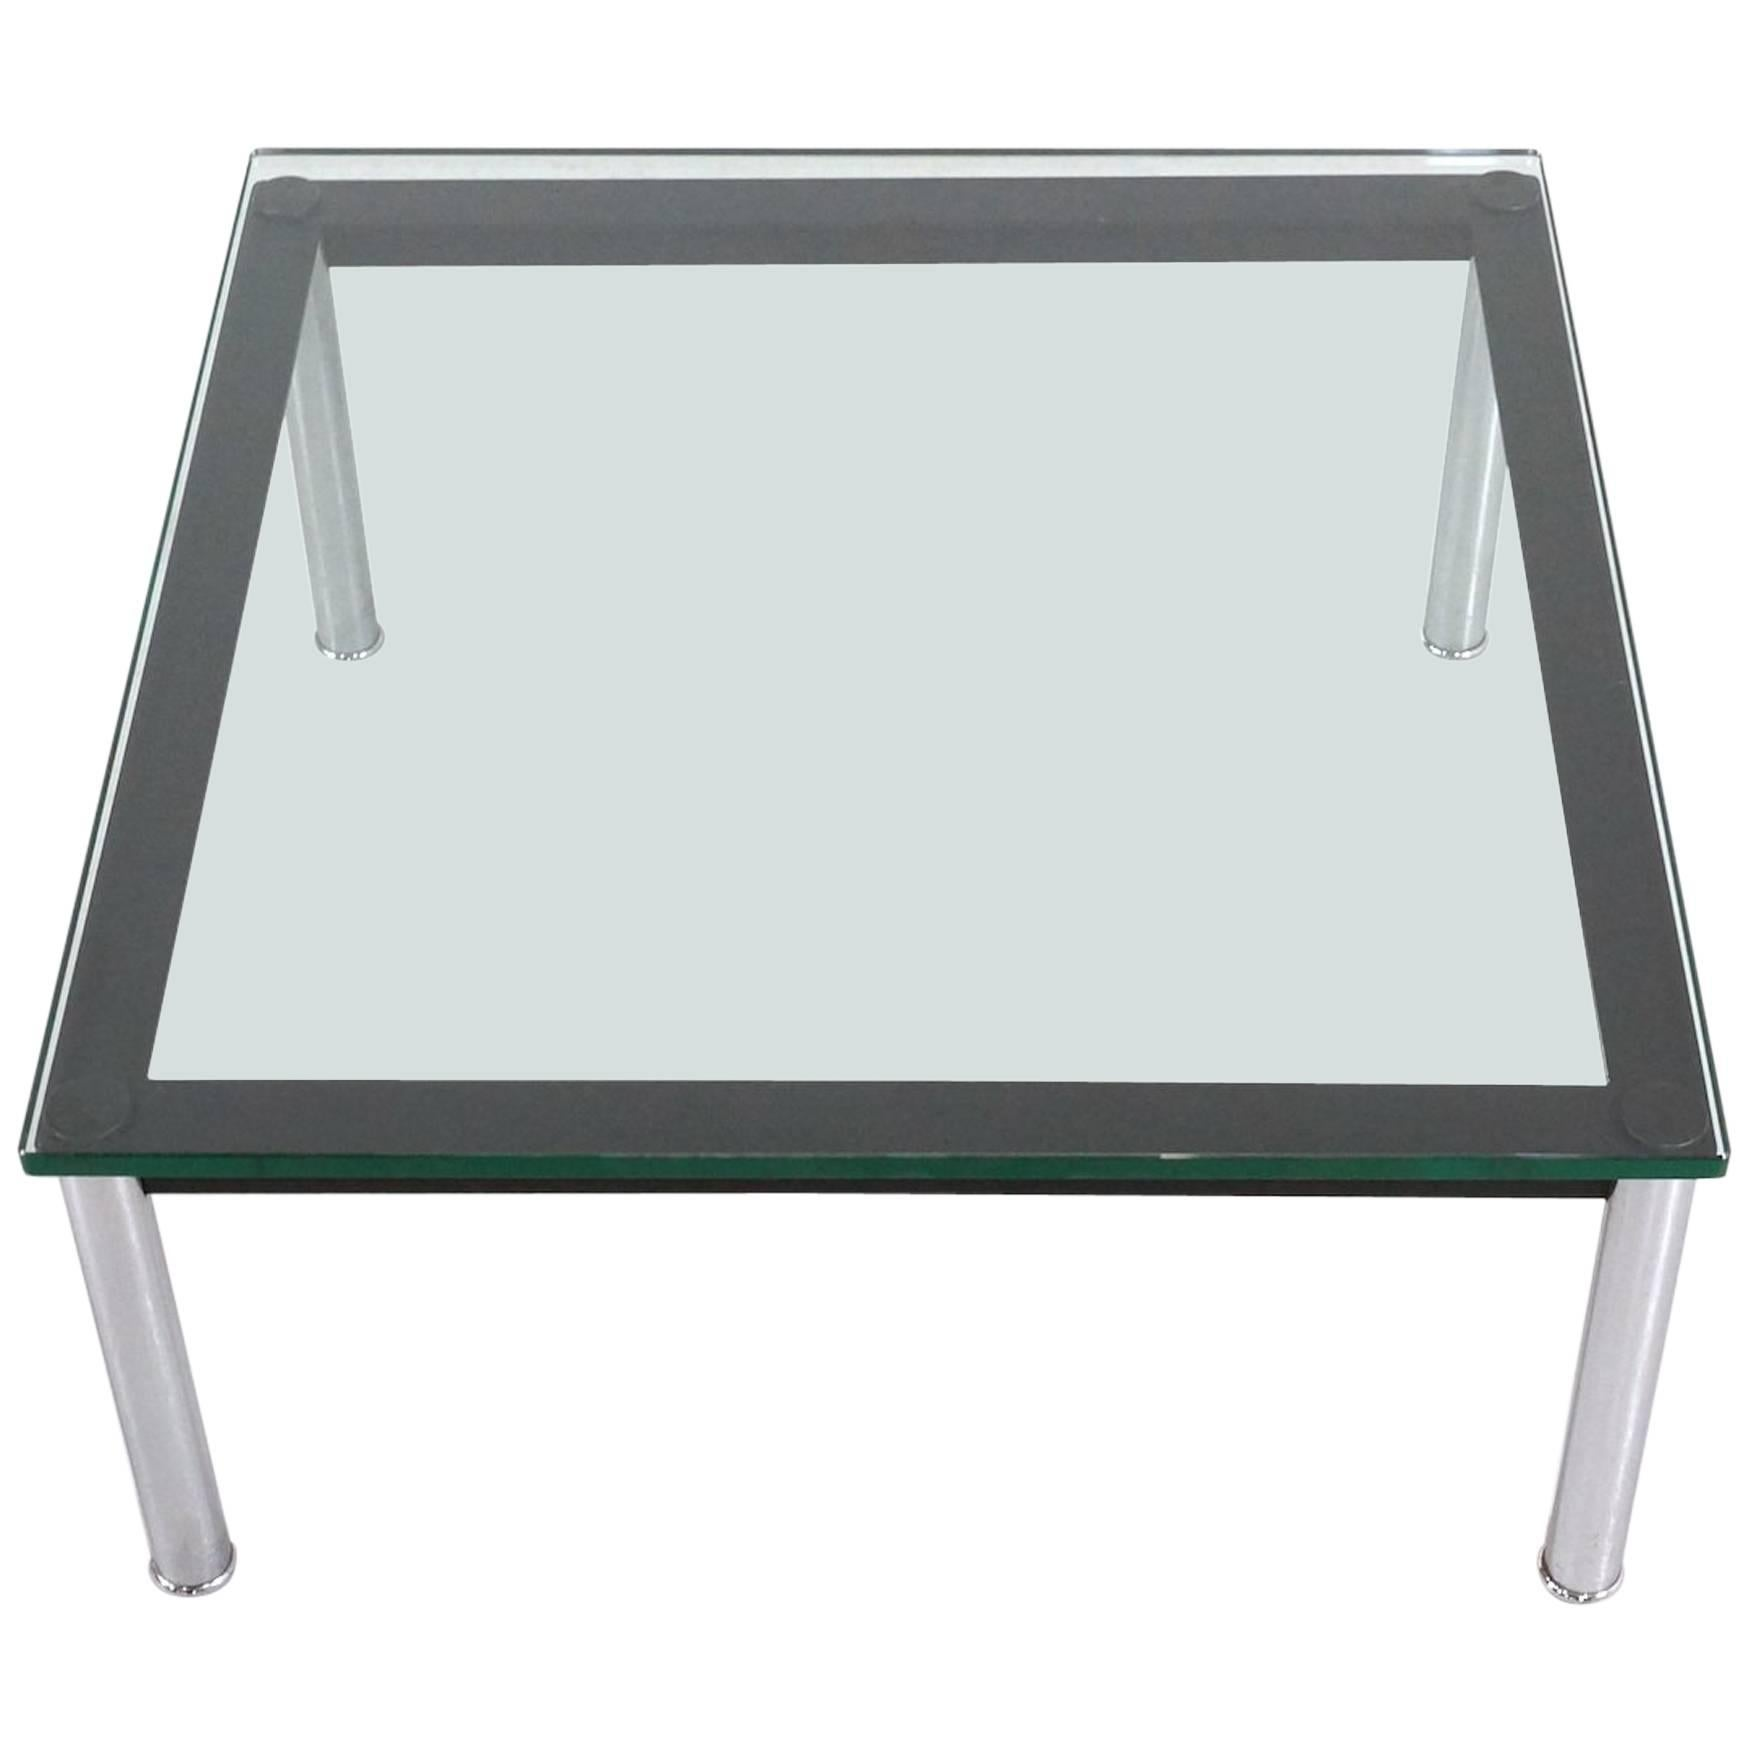 le corbusier glass table lc10 by cassina - Le Corbusier Chair